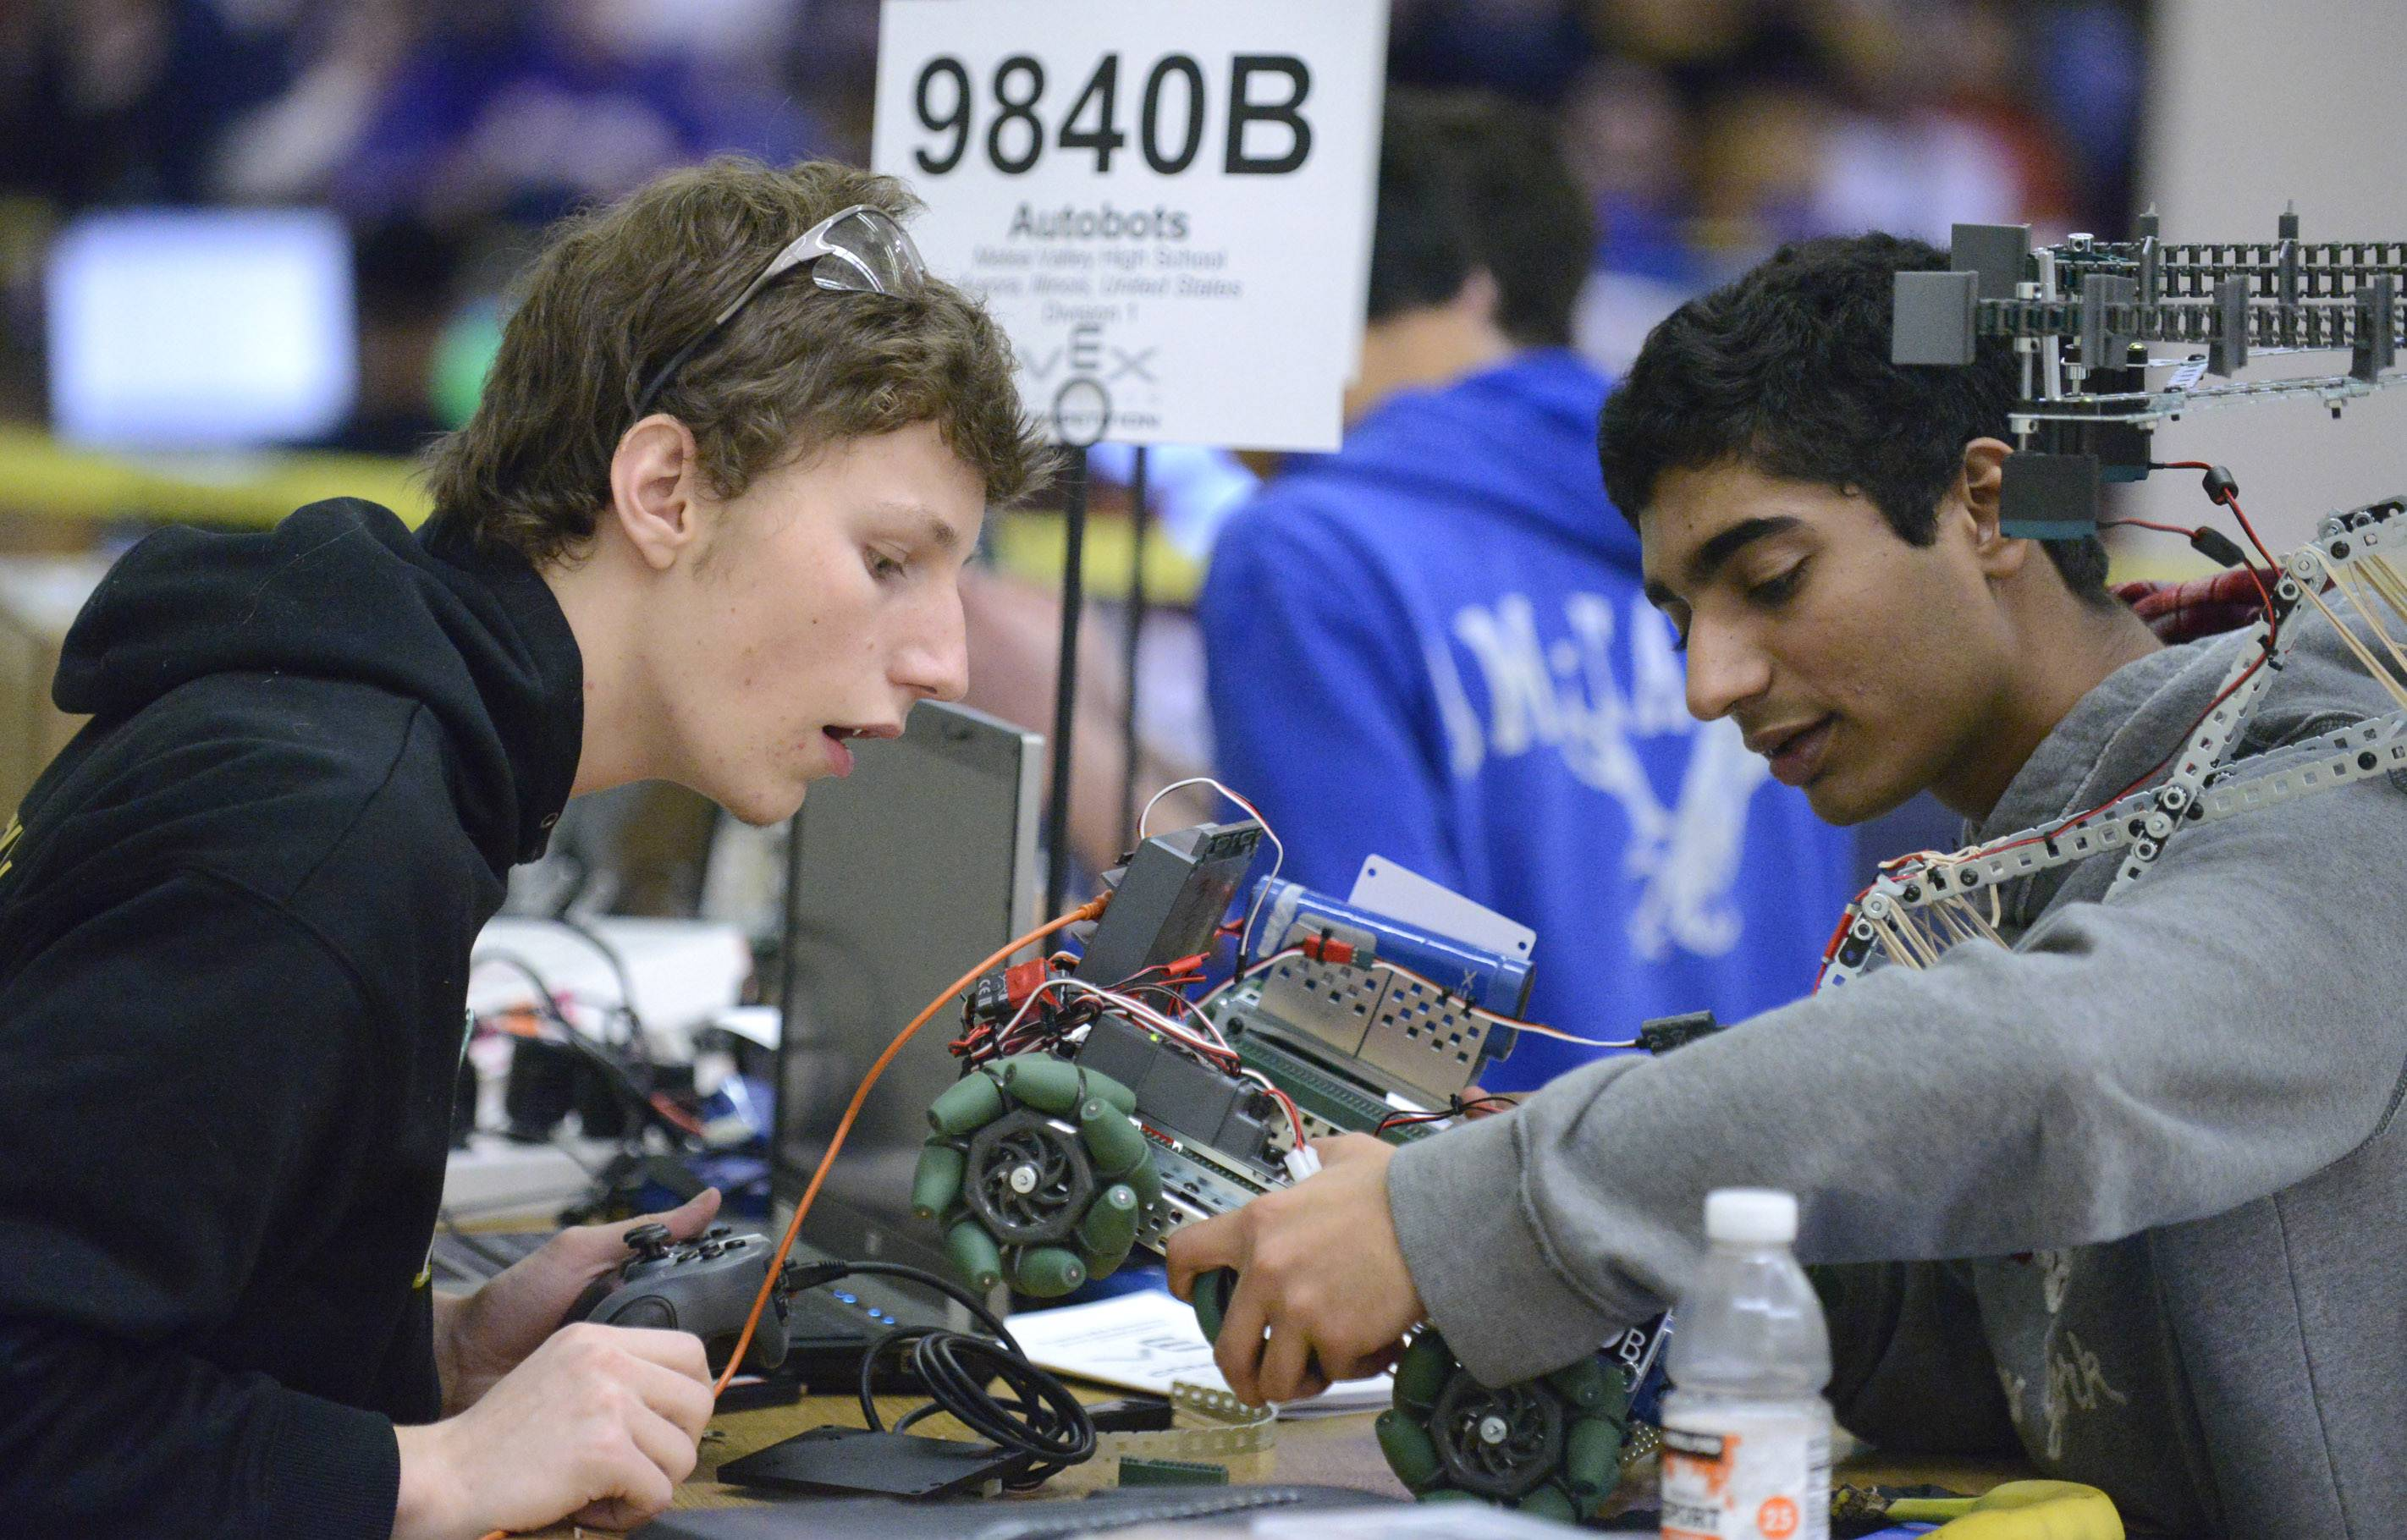 Ryan Luckinbill, 17, left, and Vignesh Sarathy, 18, of Metea Valley High School's Autobots robotics team work on their robot before the start of the Illinois VEX Robotics state championships Saturday at Batavia Middle School.